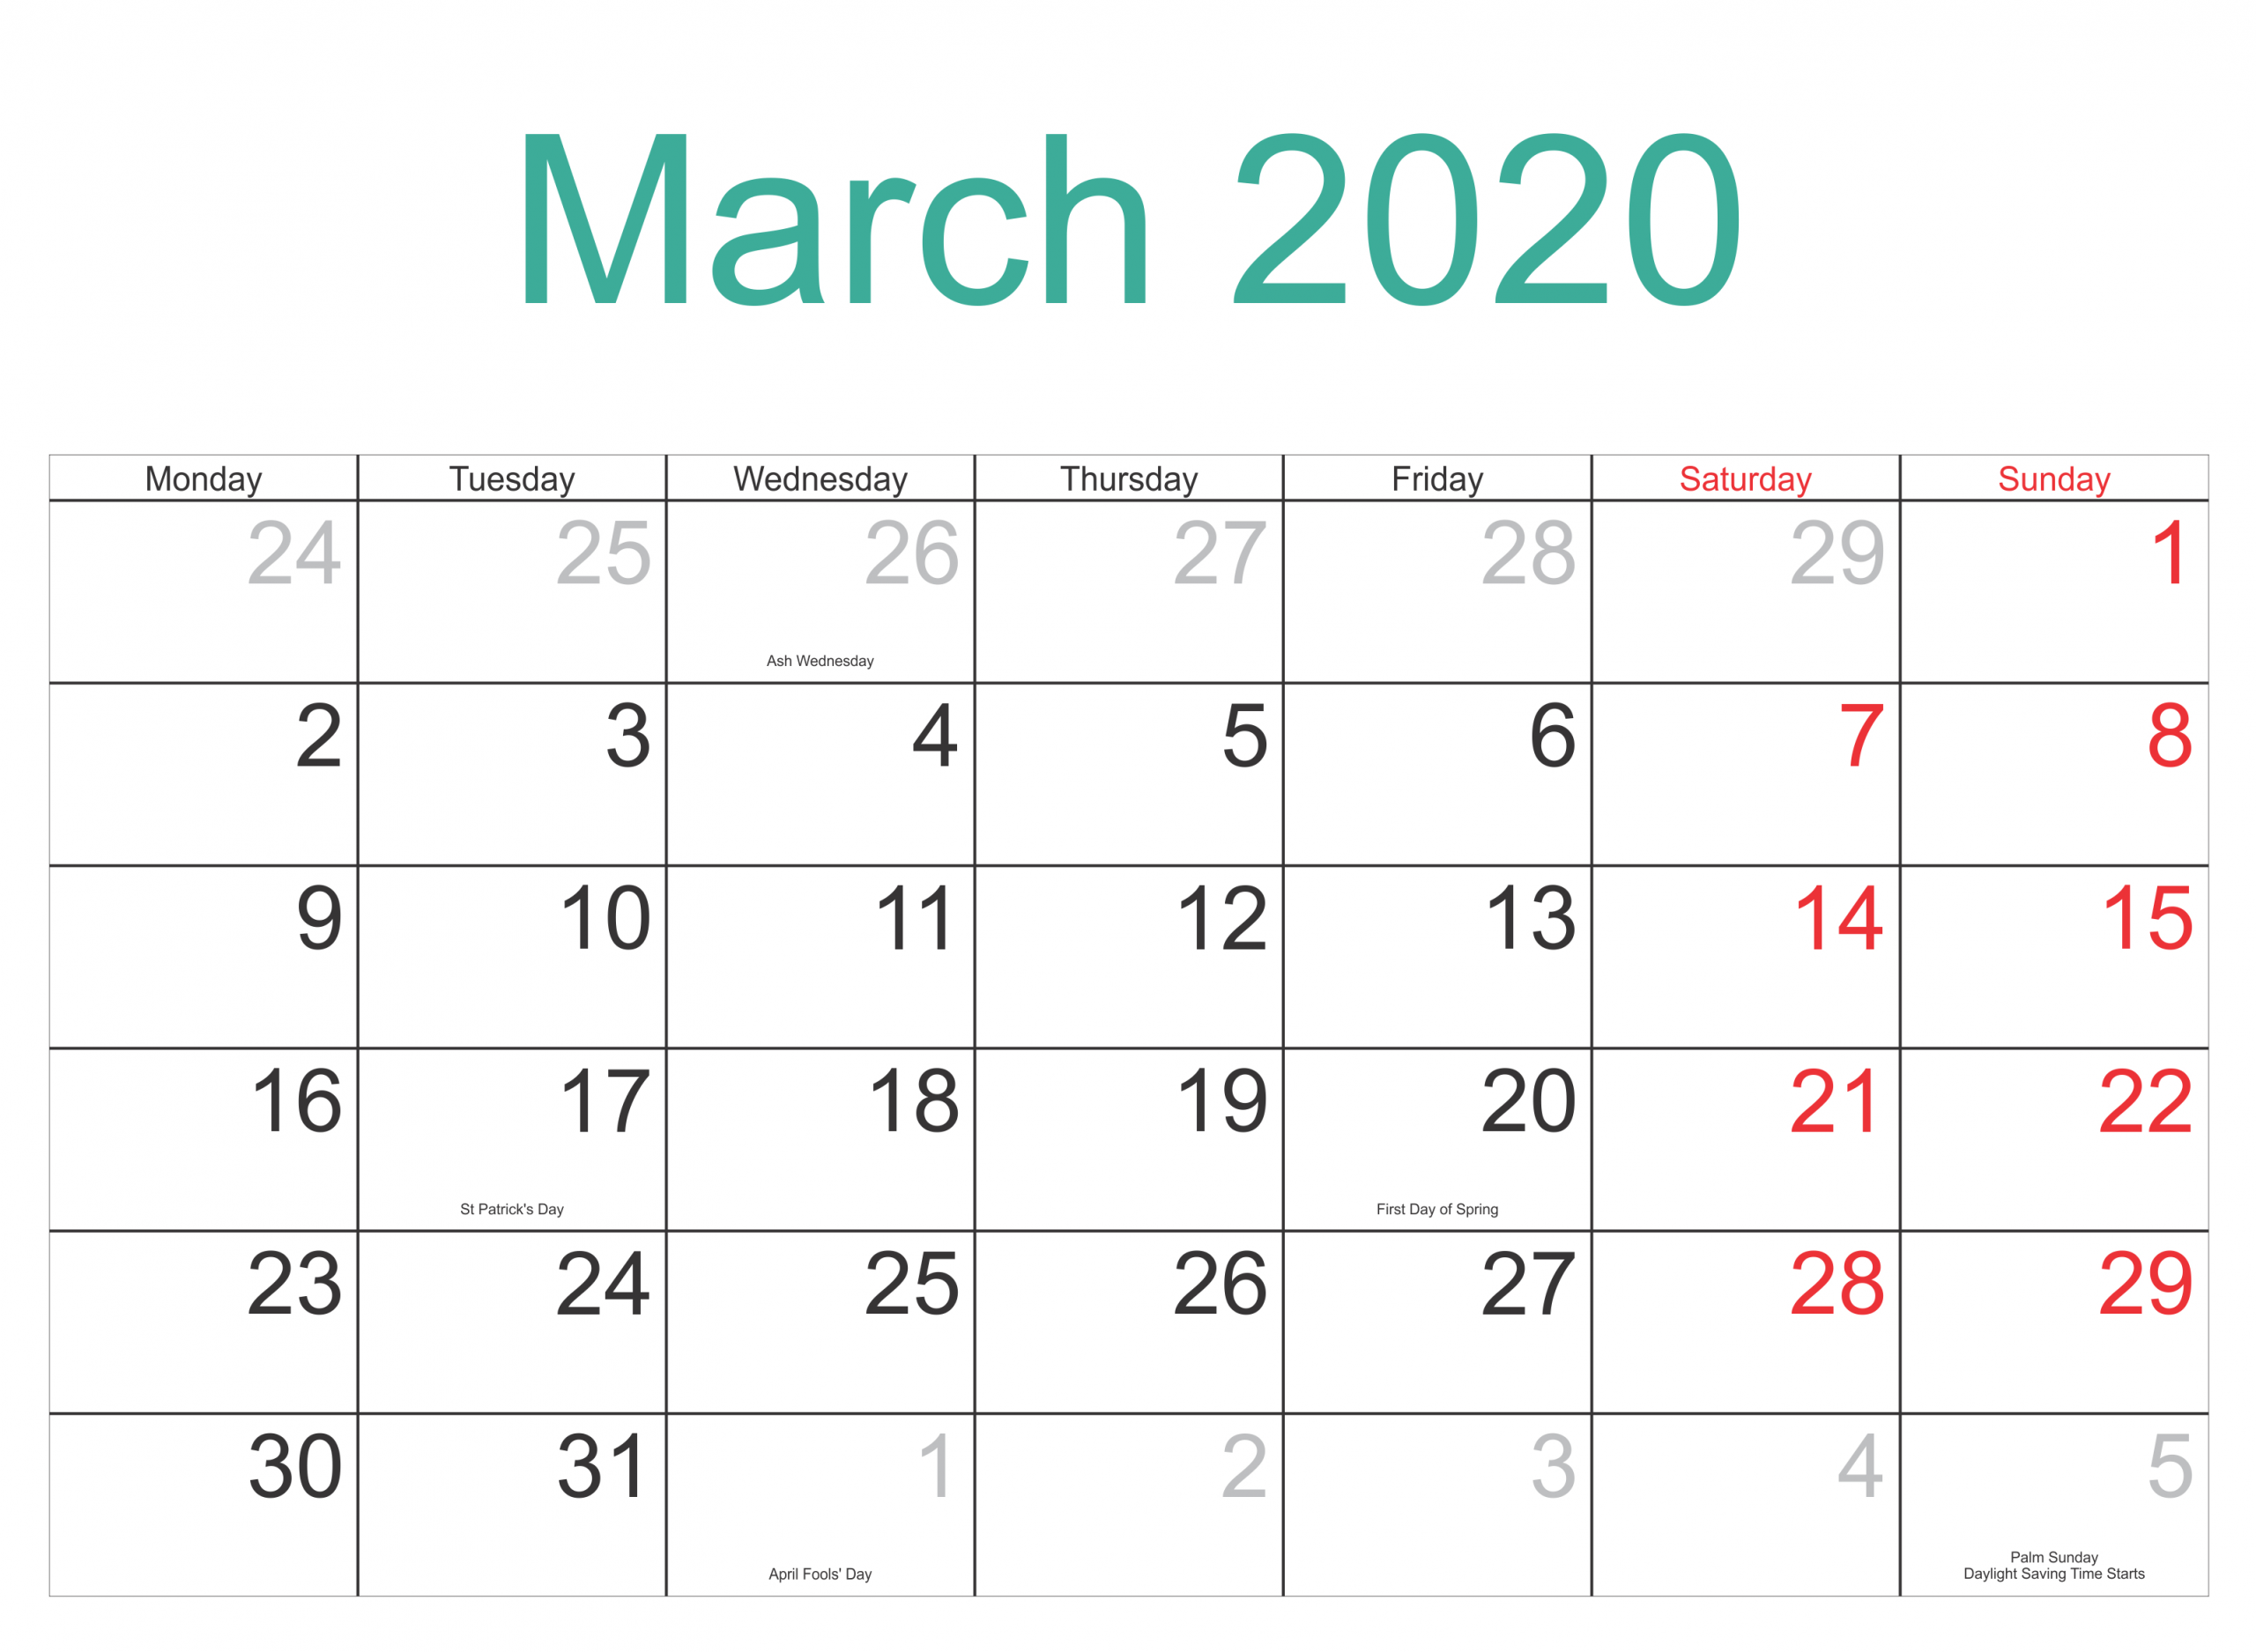 March 2020 Calendar With Holidays Template - 2019 Calendars